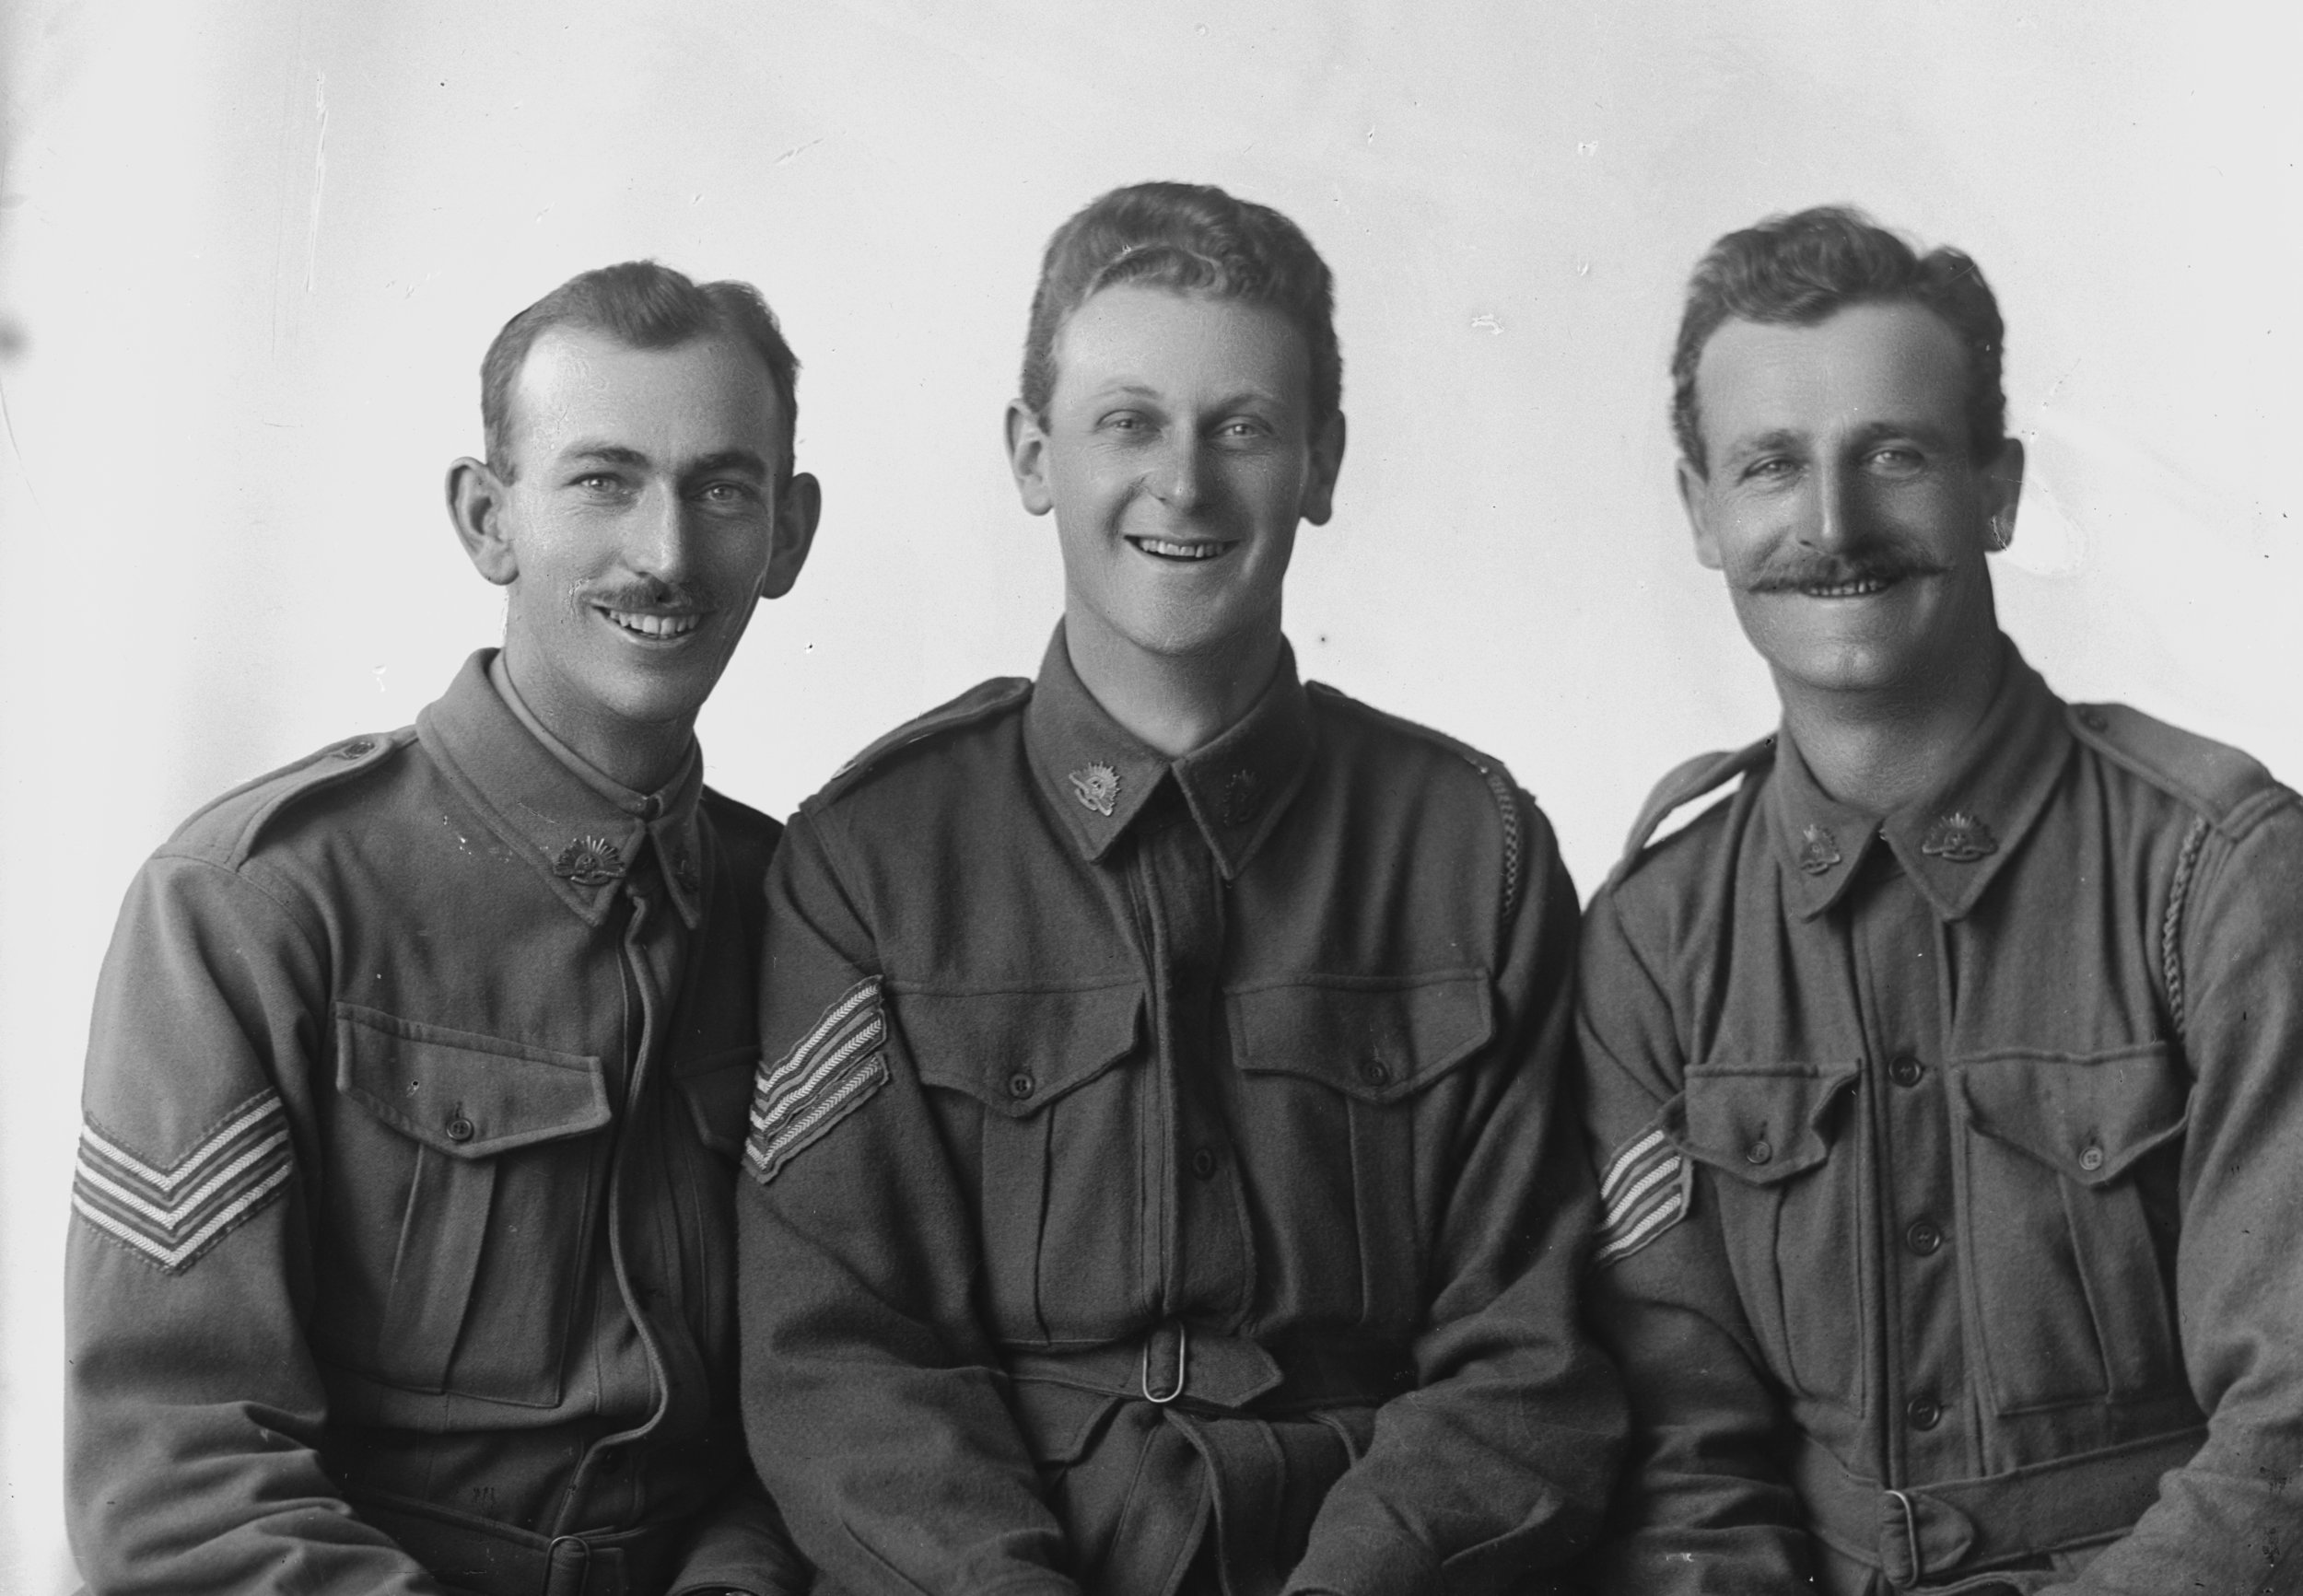 Photographed at the Dease Studio, 117 Barrack Street Perth WA Image courtesy of the State Library of Western Australia: 108377PD